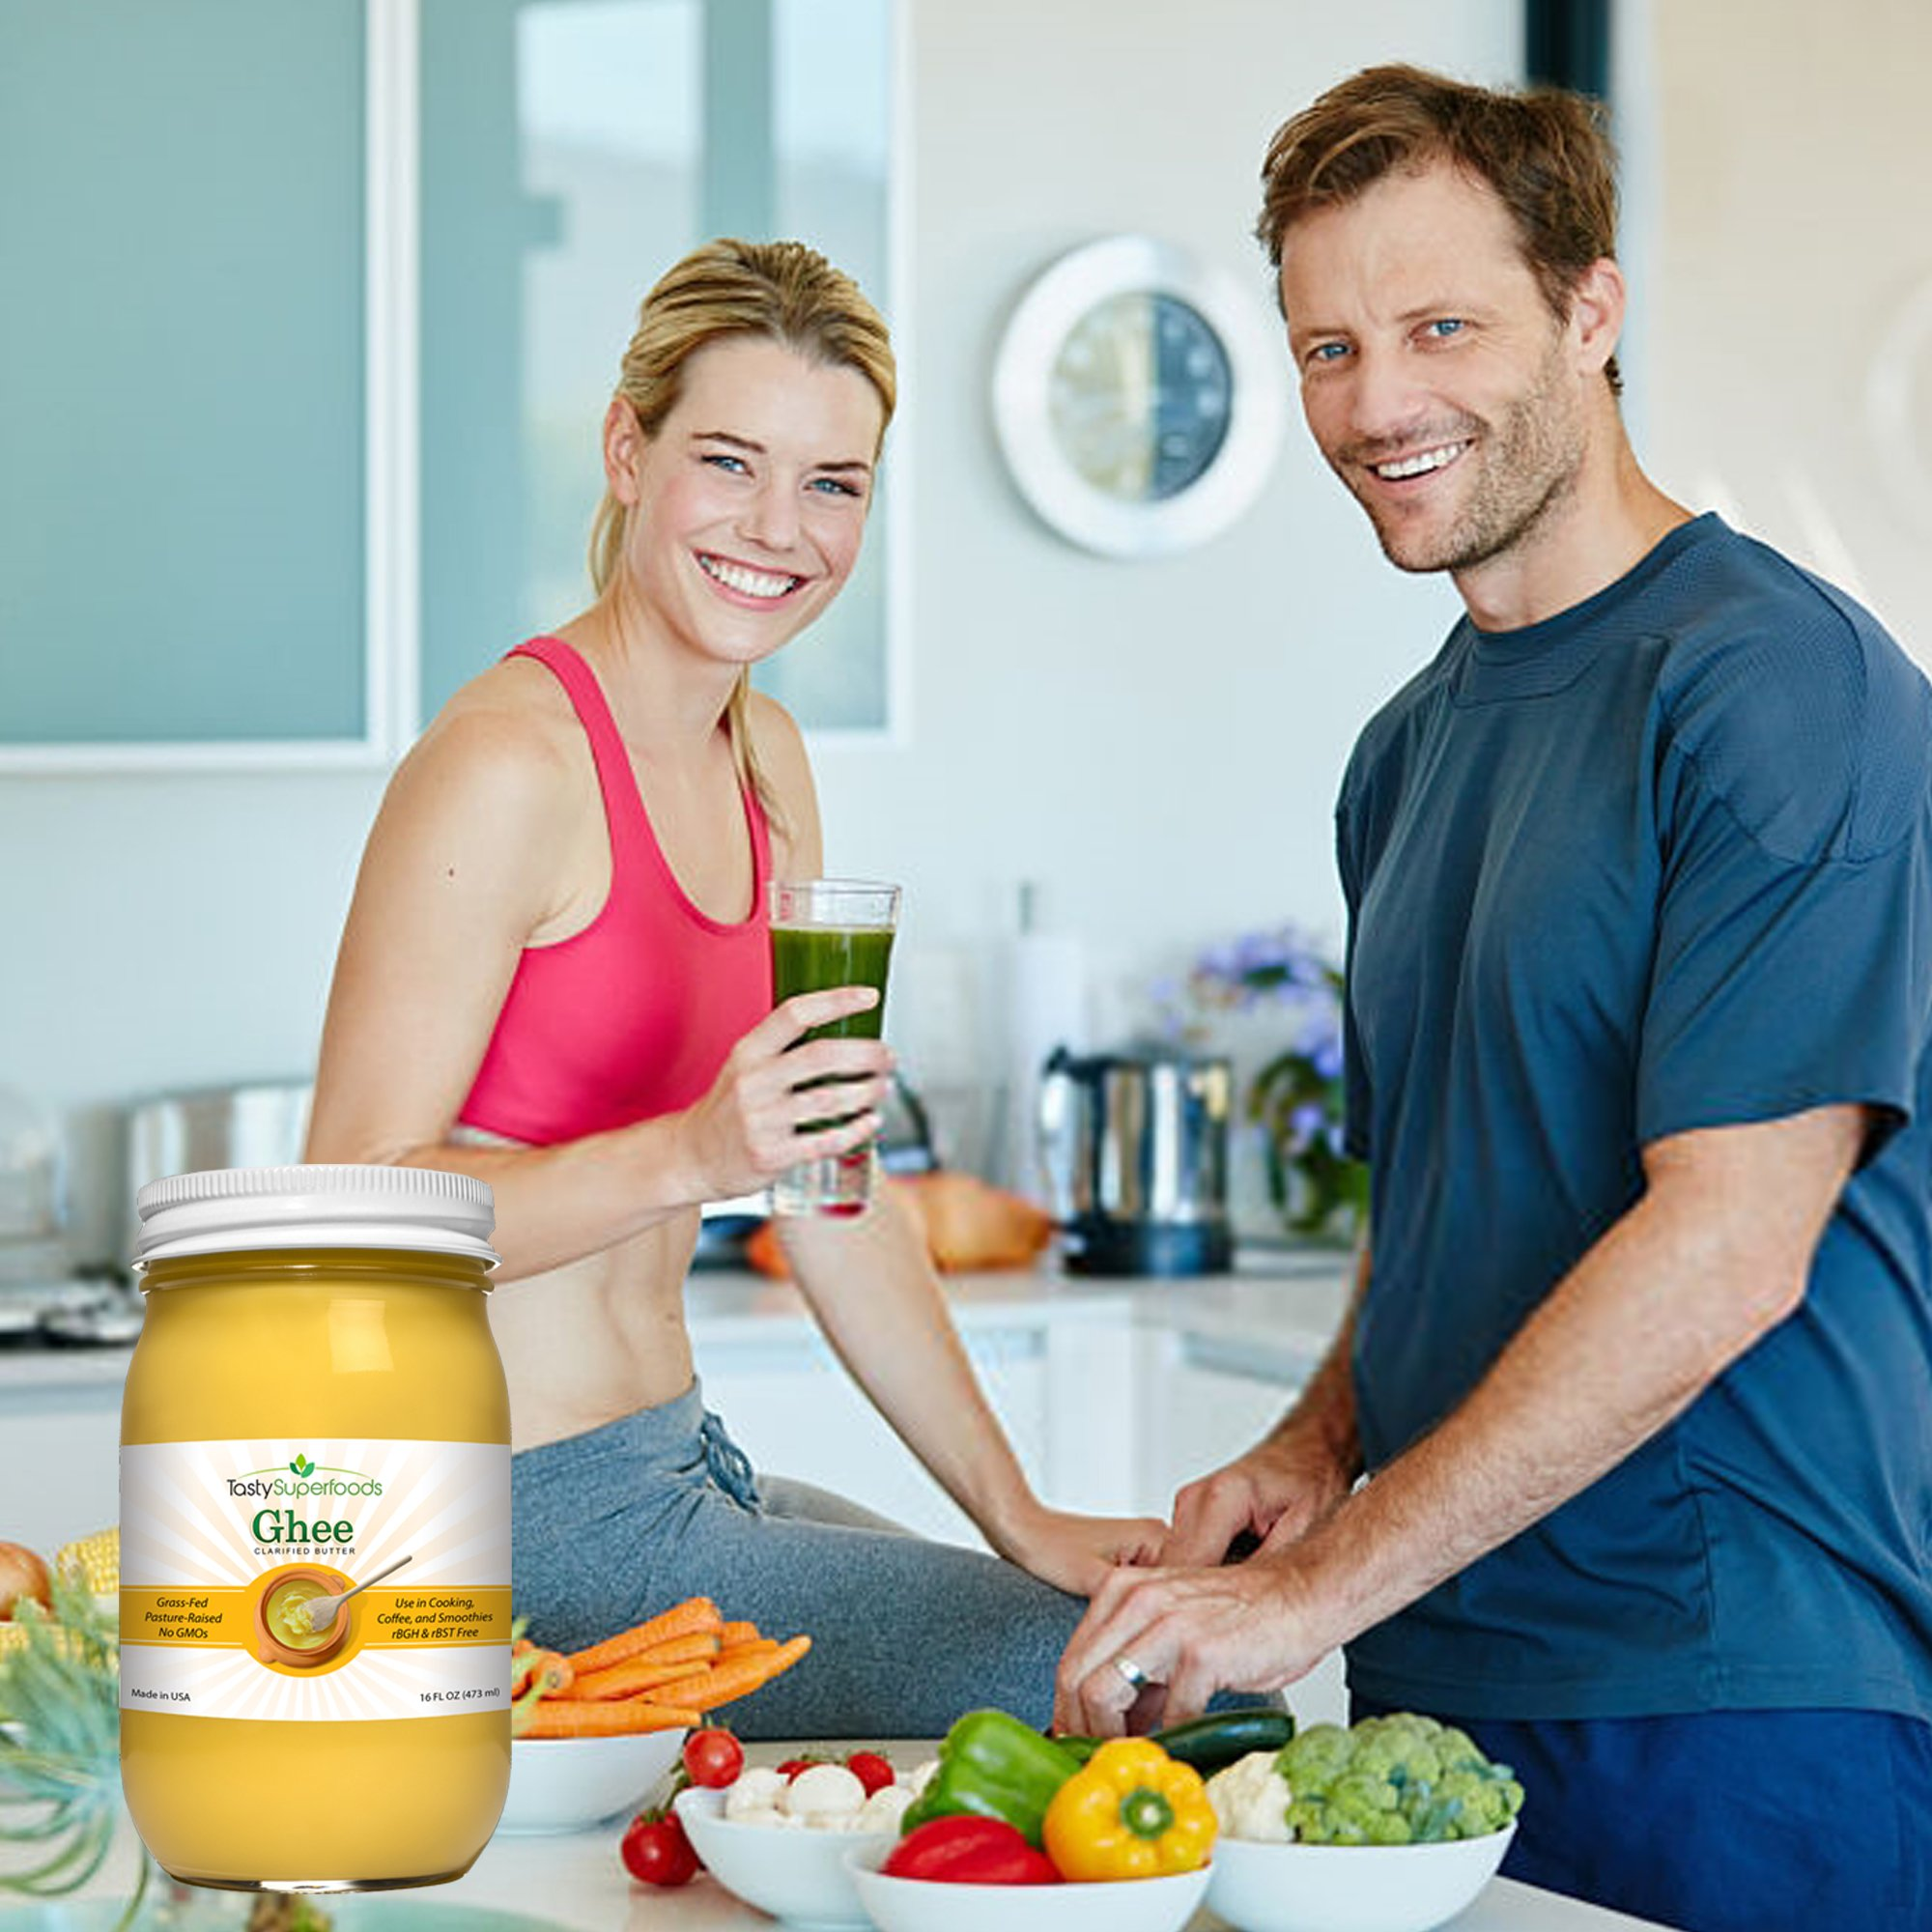 Tasty Superfoods Grass Fed Organic Ghee - Glass Jar of Pure, Unsalted Clarified Butter from Grass-Fed Cows - Best Healthy Oil for Indian Cooking, in Coffee, or for diets like Paleo and Whole30 (16oz) by Tasty Superfoods (Image #7)